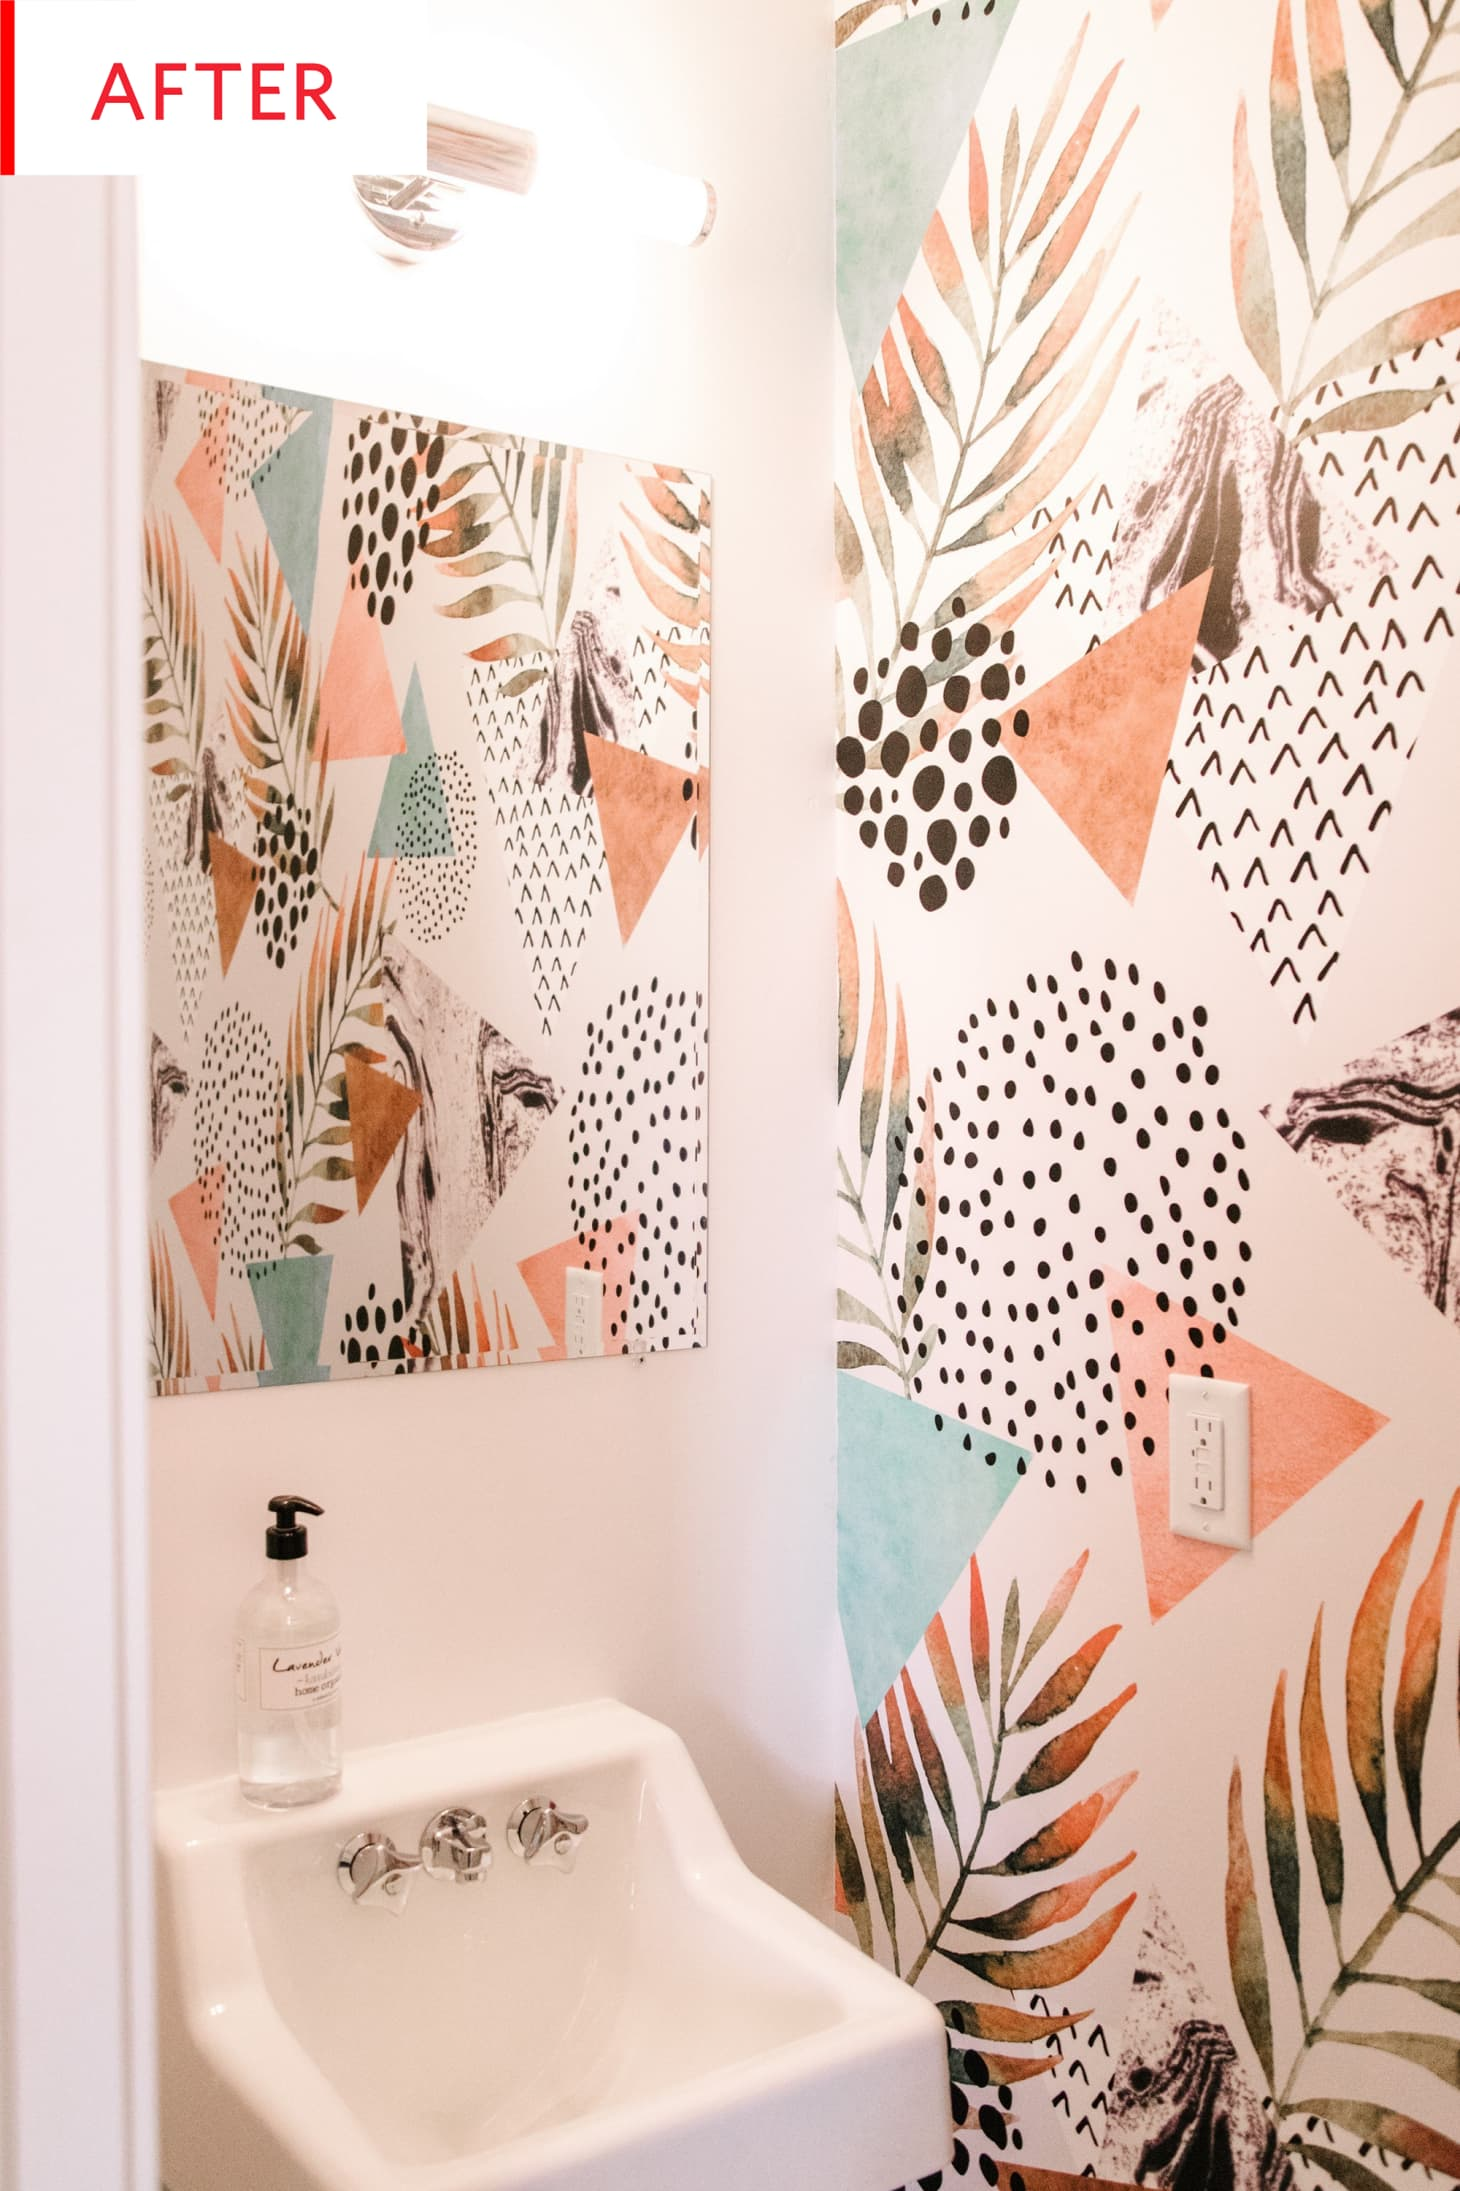 Removable Wallpaper Bathroom Wall - Before After | Apartment ...